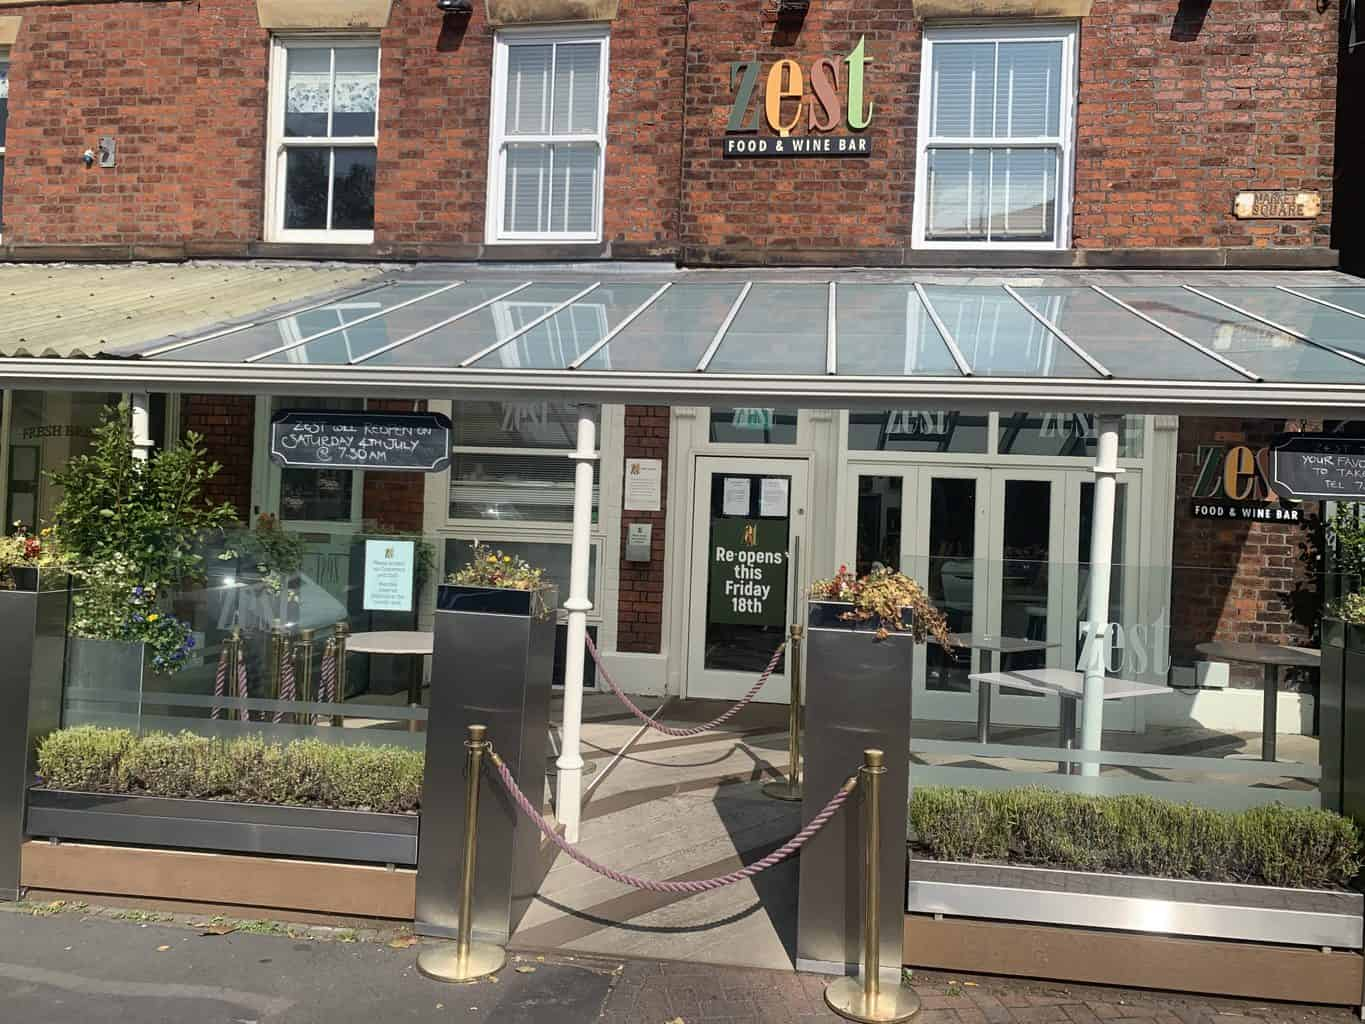 Zest to Reopen THIS Friday after Covid Clean